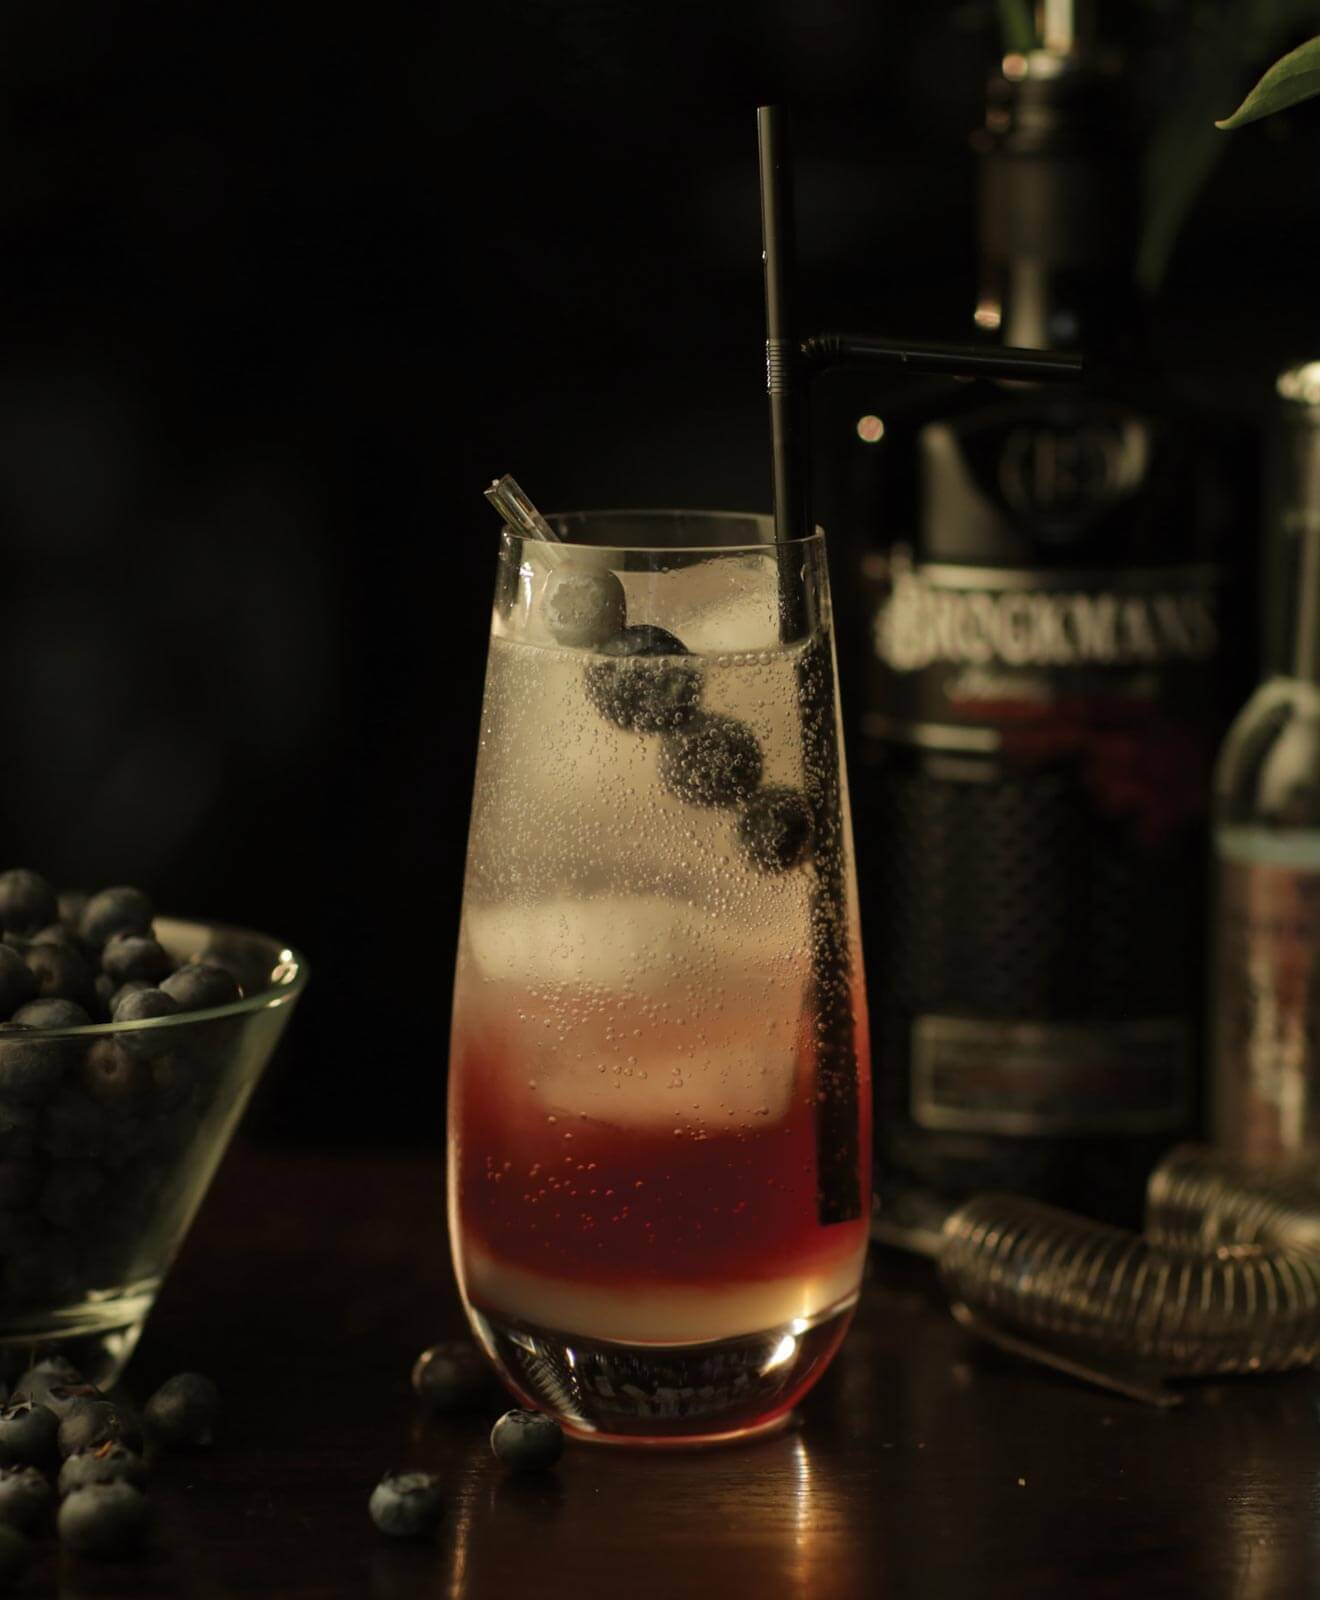 brockmans garden cocktail with garnish, dark background